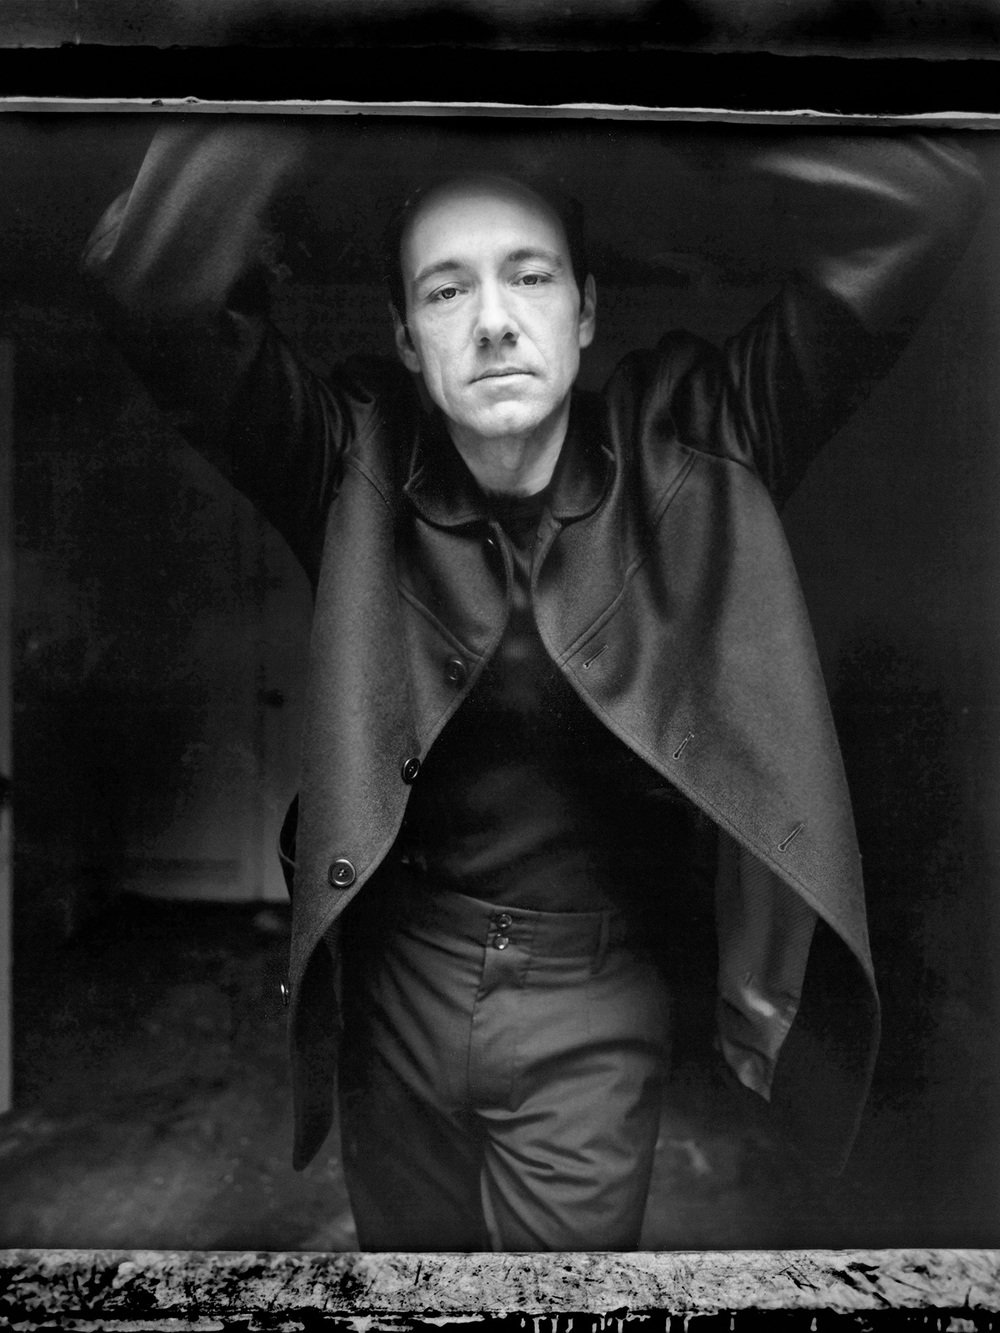 Kevin Spacey photographed by Patrik Andersson downtown Los Angeles at the location of the movie Seven